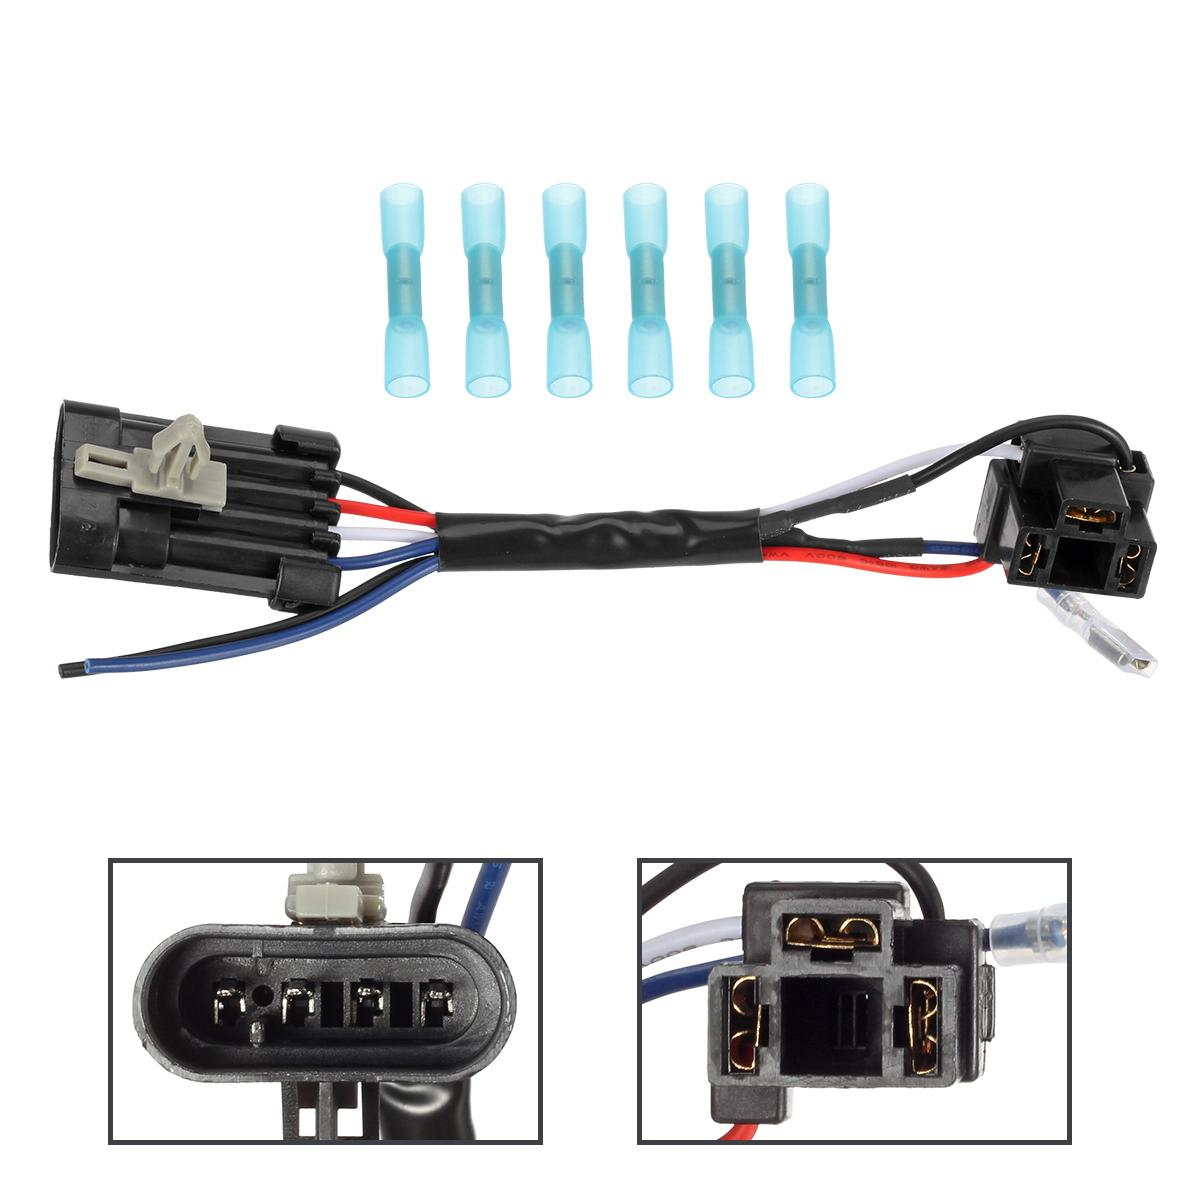 hight resolution of 1 5 3 4 inch 7 led headlight wire harness adapter for 2014 2017 harley davidson